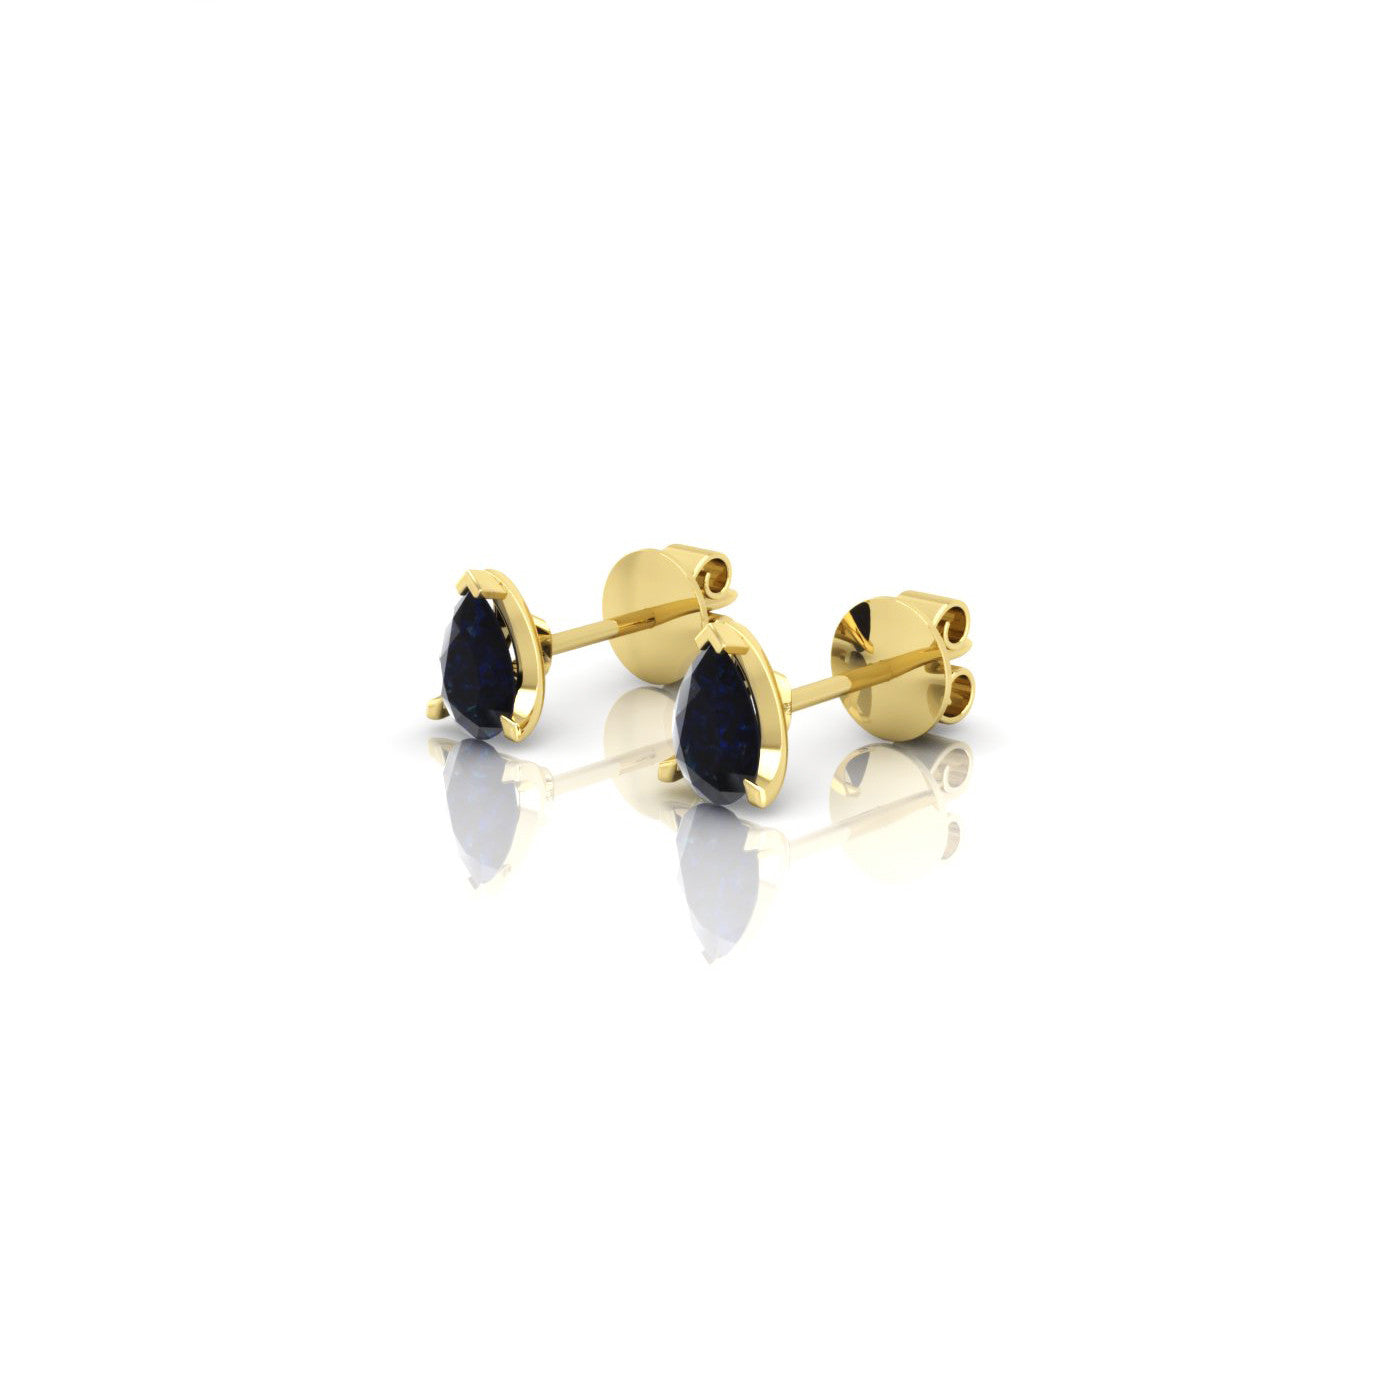 Fly Stud Earrings